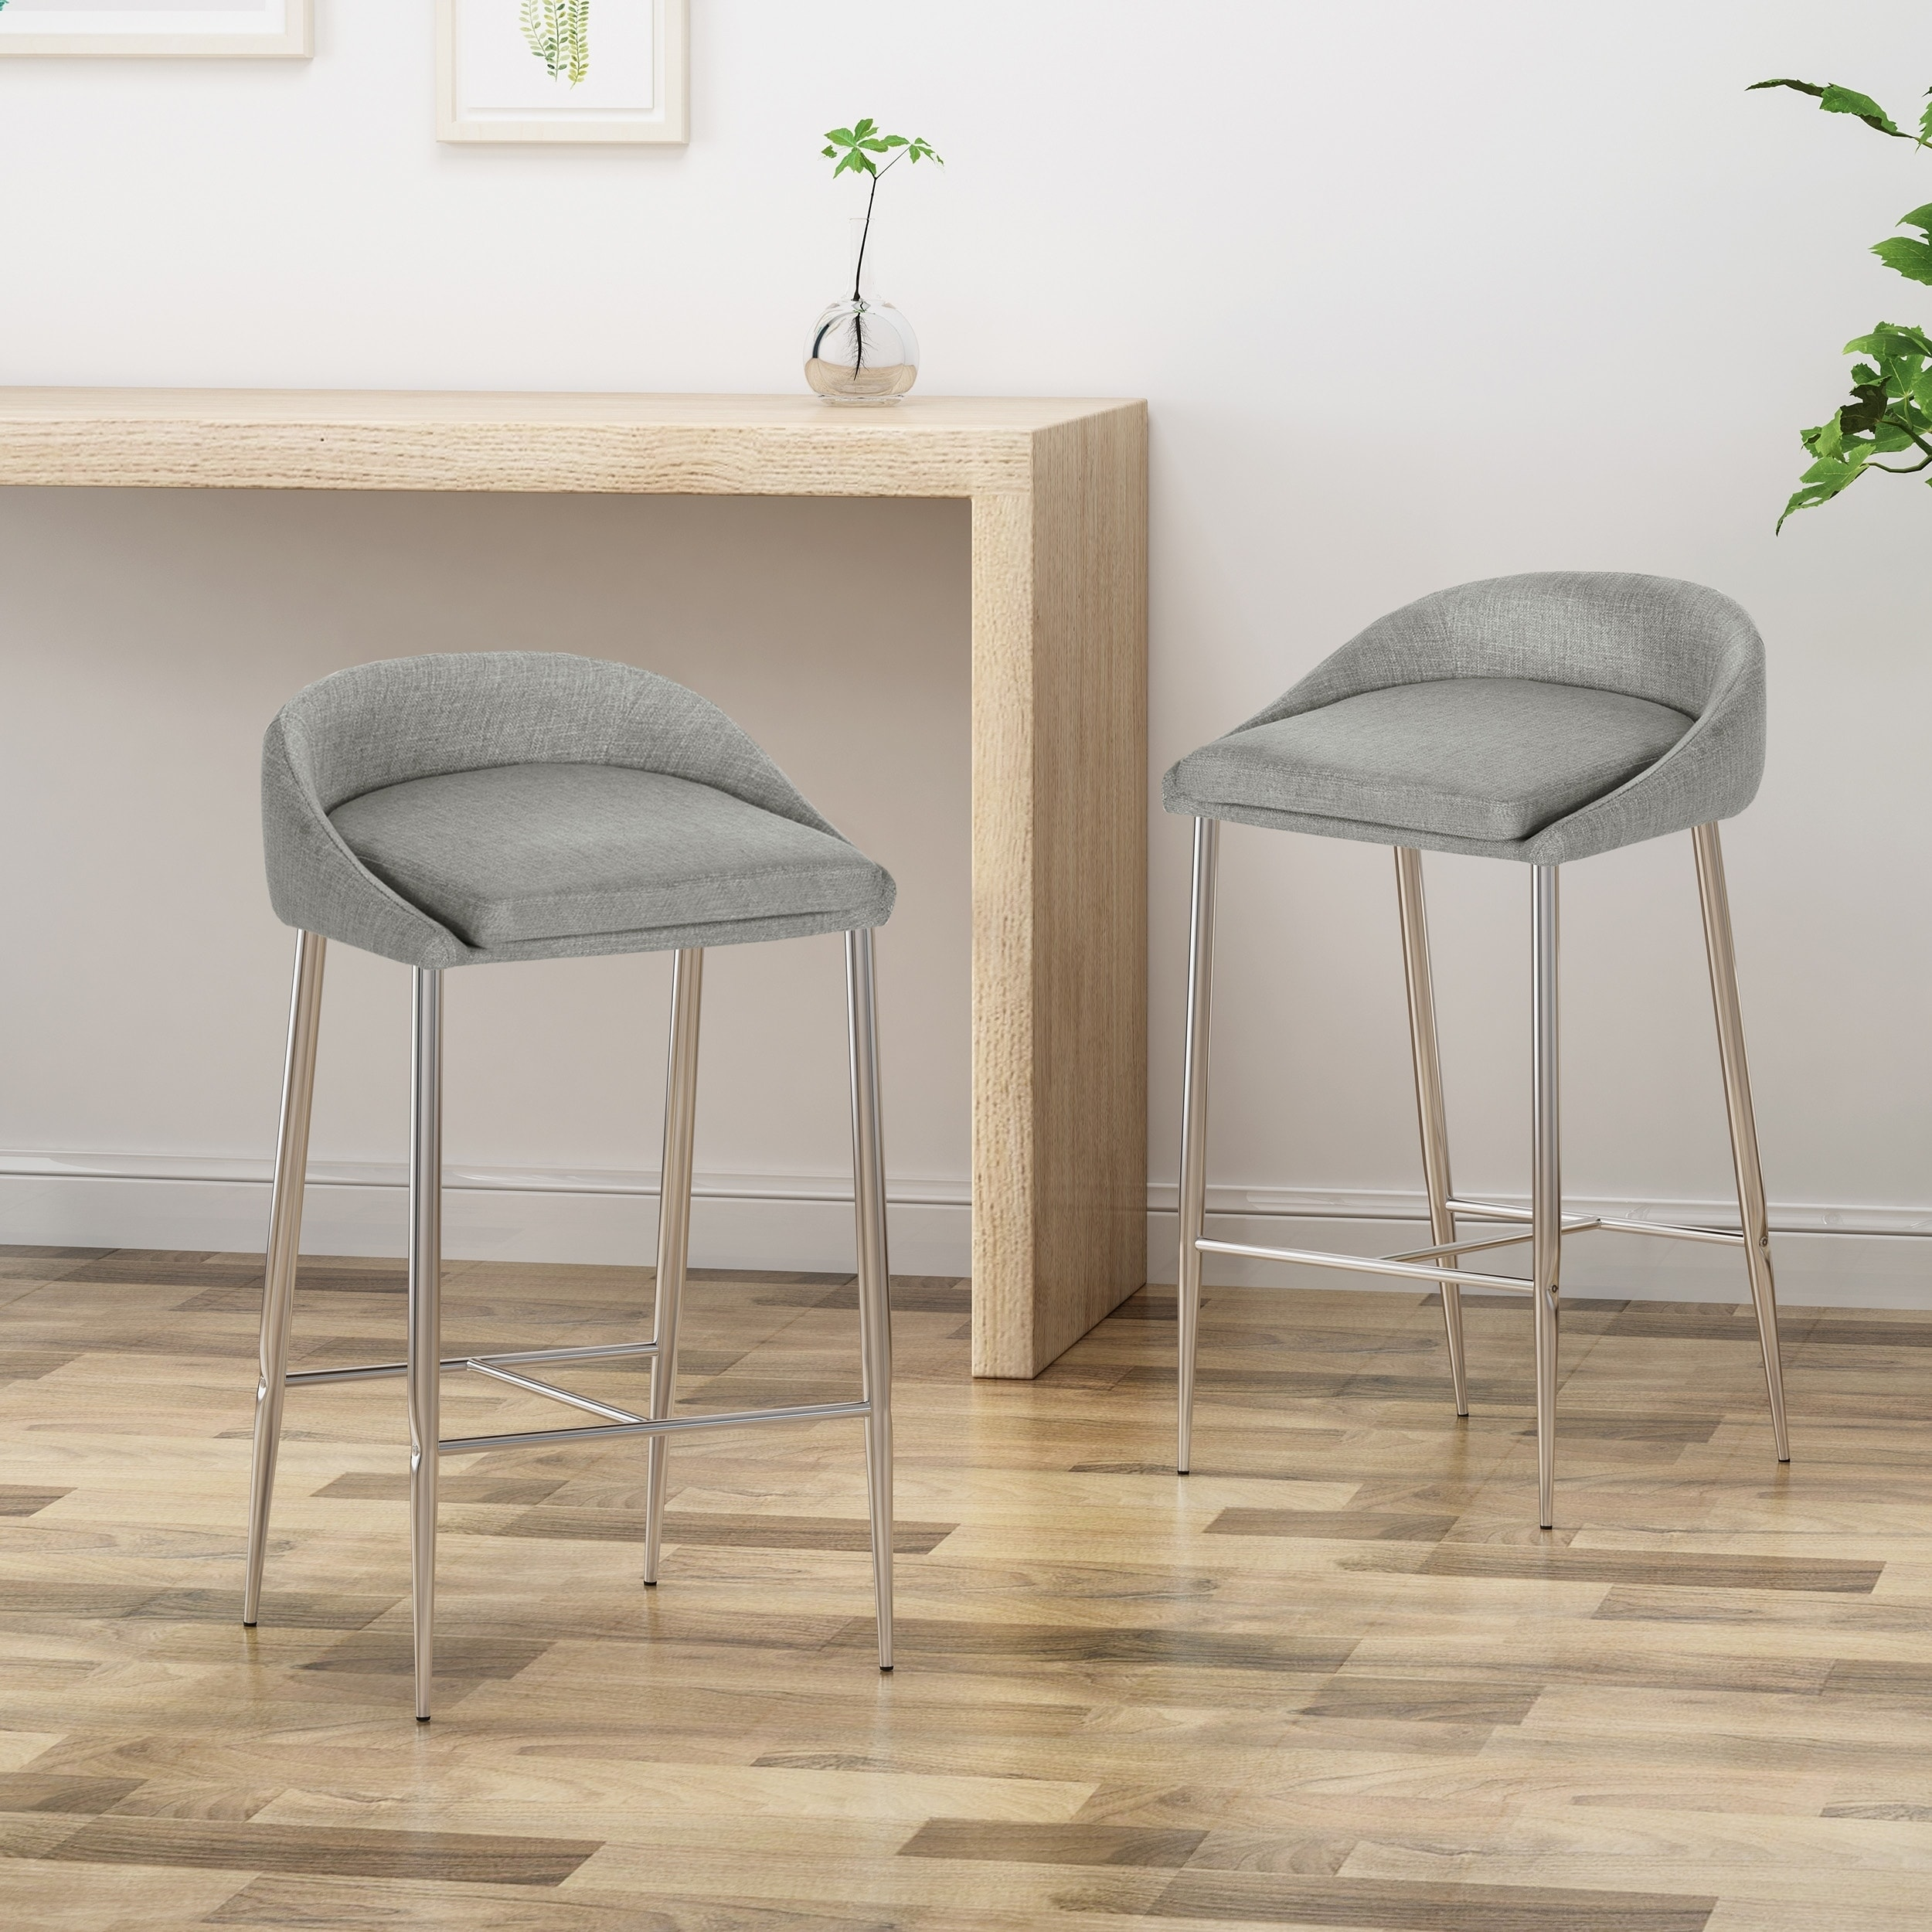 Shop bandini modern upholstered bar stools with chrome iron legs set of 2 by christopher knight home on sale free shipping today overstock com